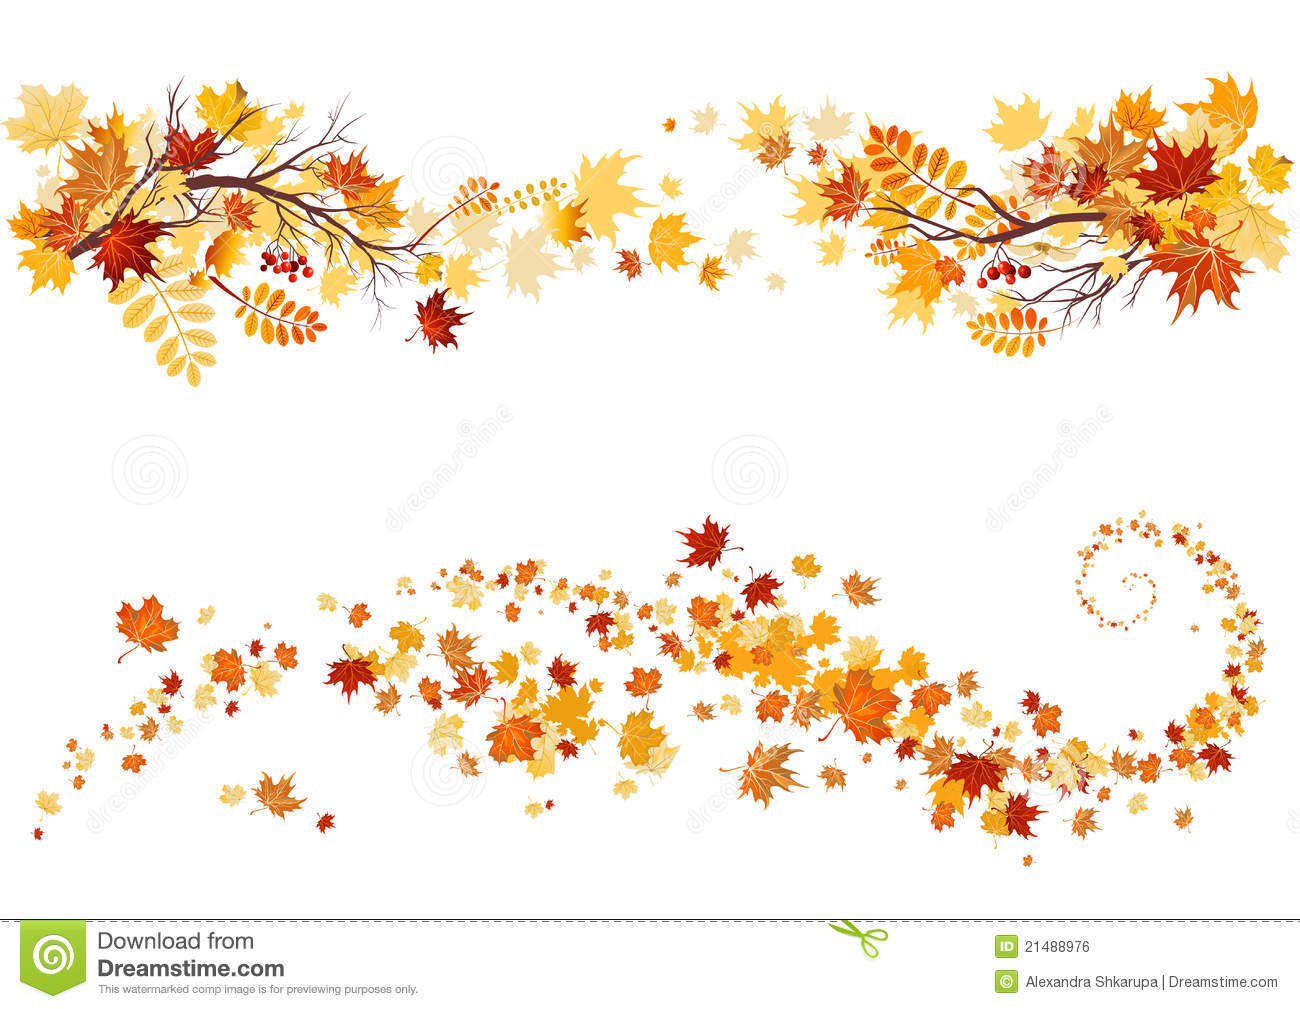 72+ Autumn Leaves Bord... Fall Leaves Border Clip Art | ClipartLook